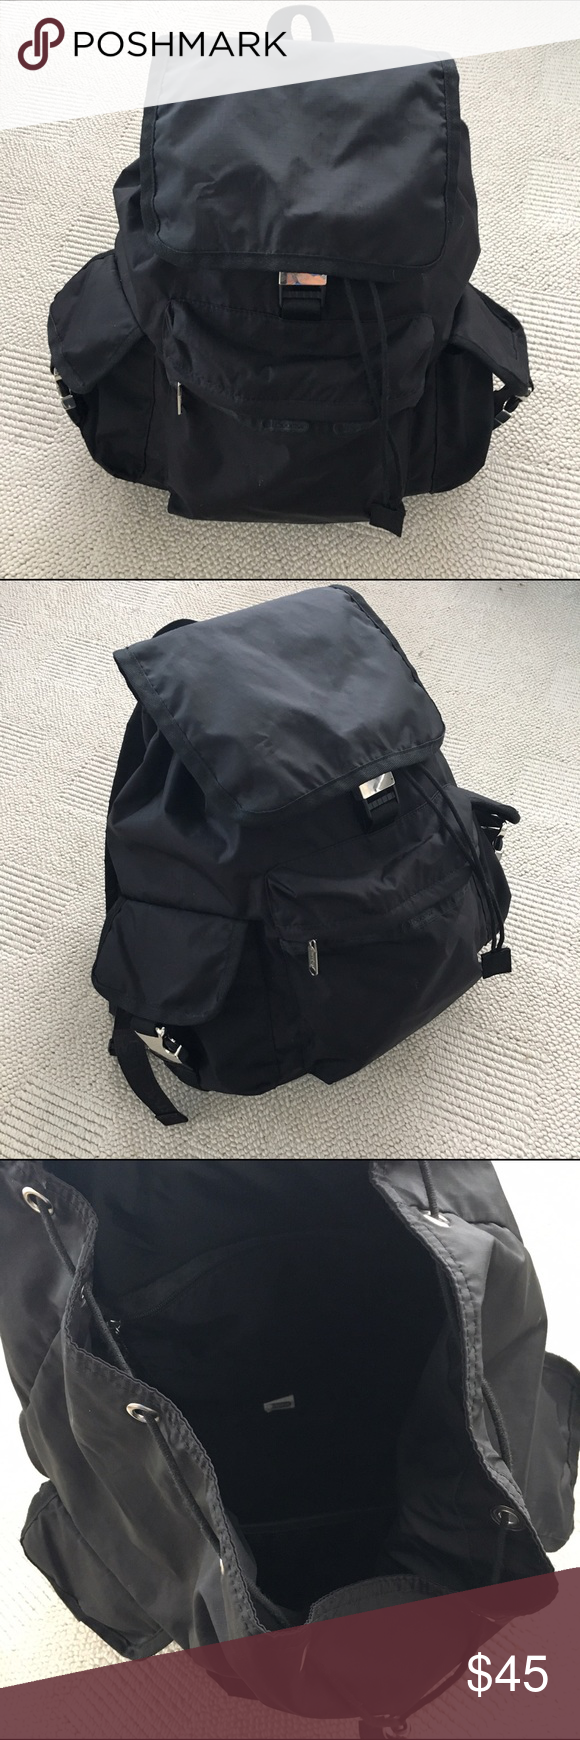 9144ad6c0 LeSportsac Voyager backpack Authentic LeSportsac black nylon backpack.  Super light weight and great as a